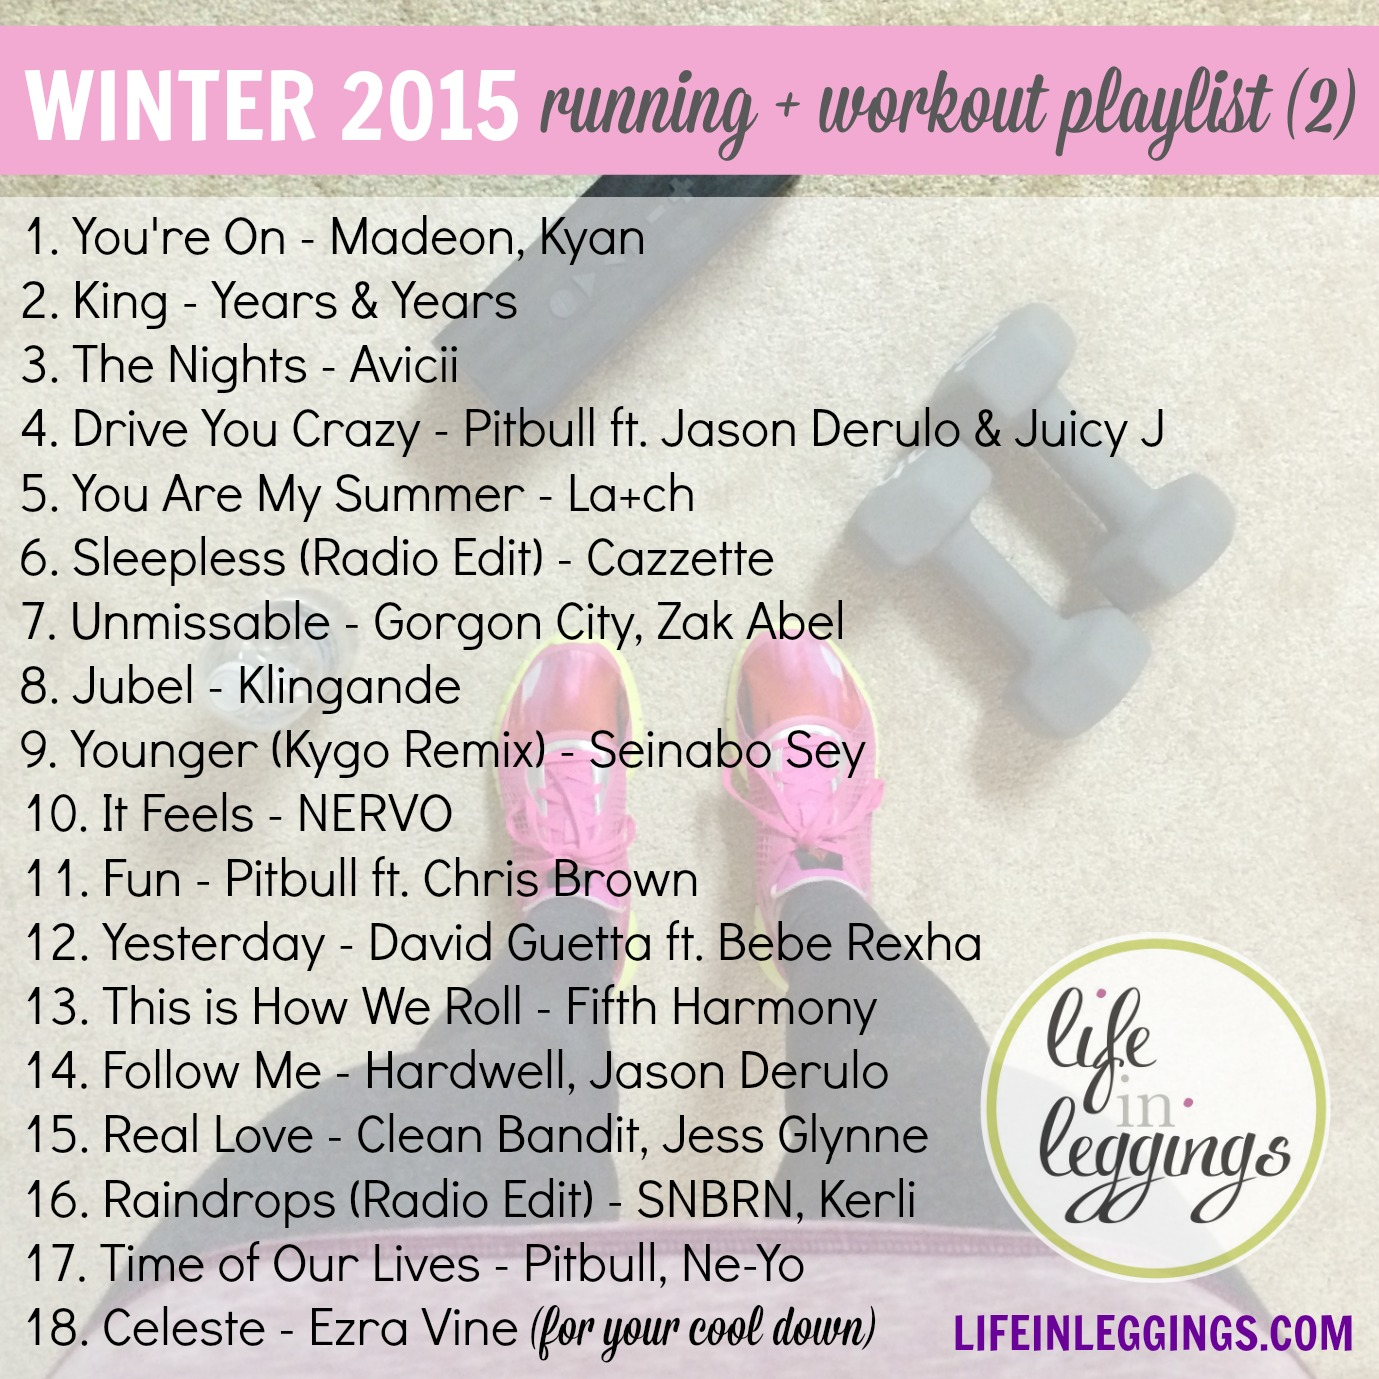 winter 2015 running workout playlist 2